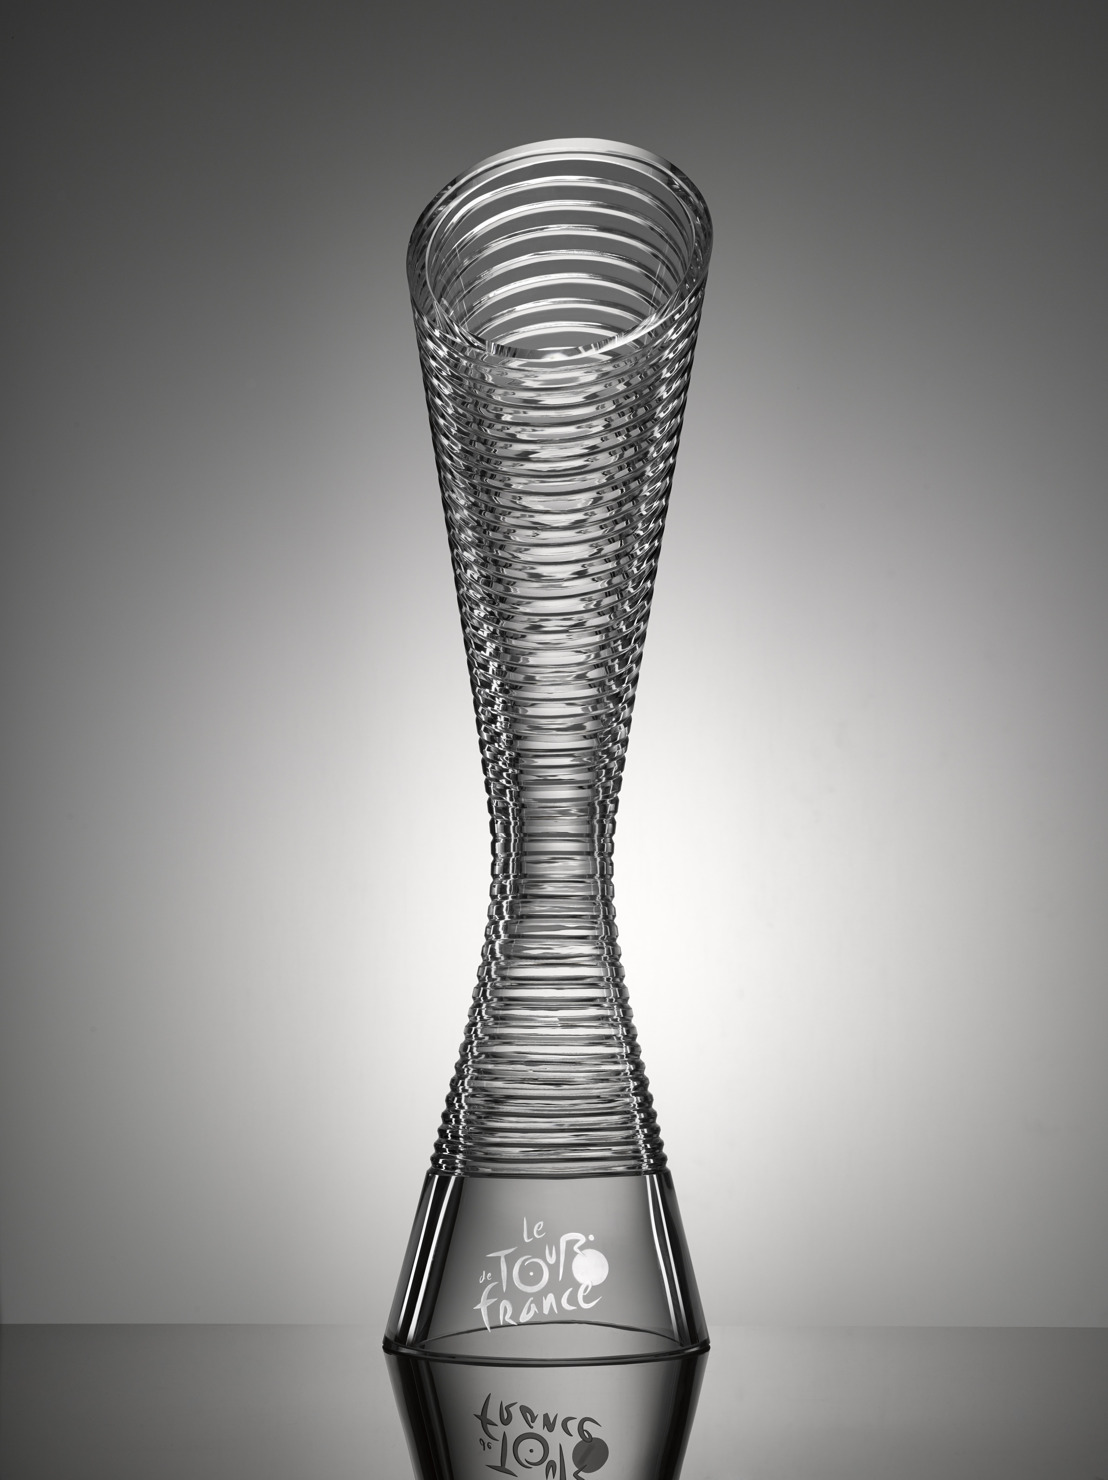 SKODA Designs Glass Trophies For The Winners Of Tour De France